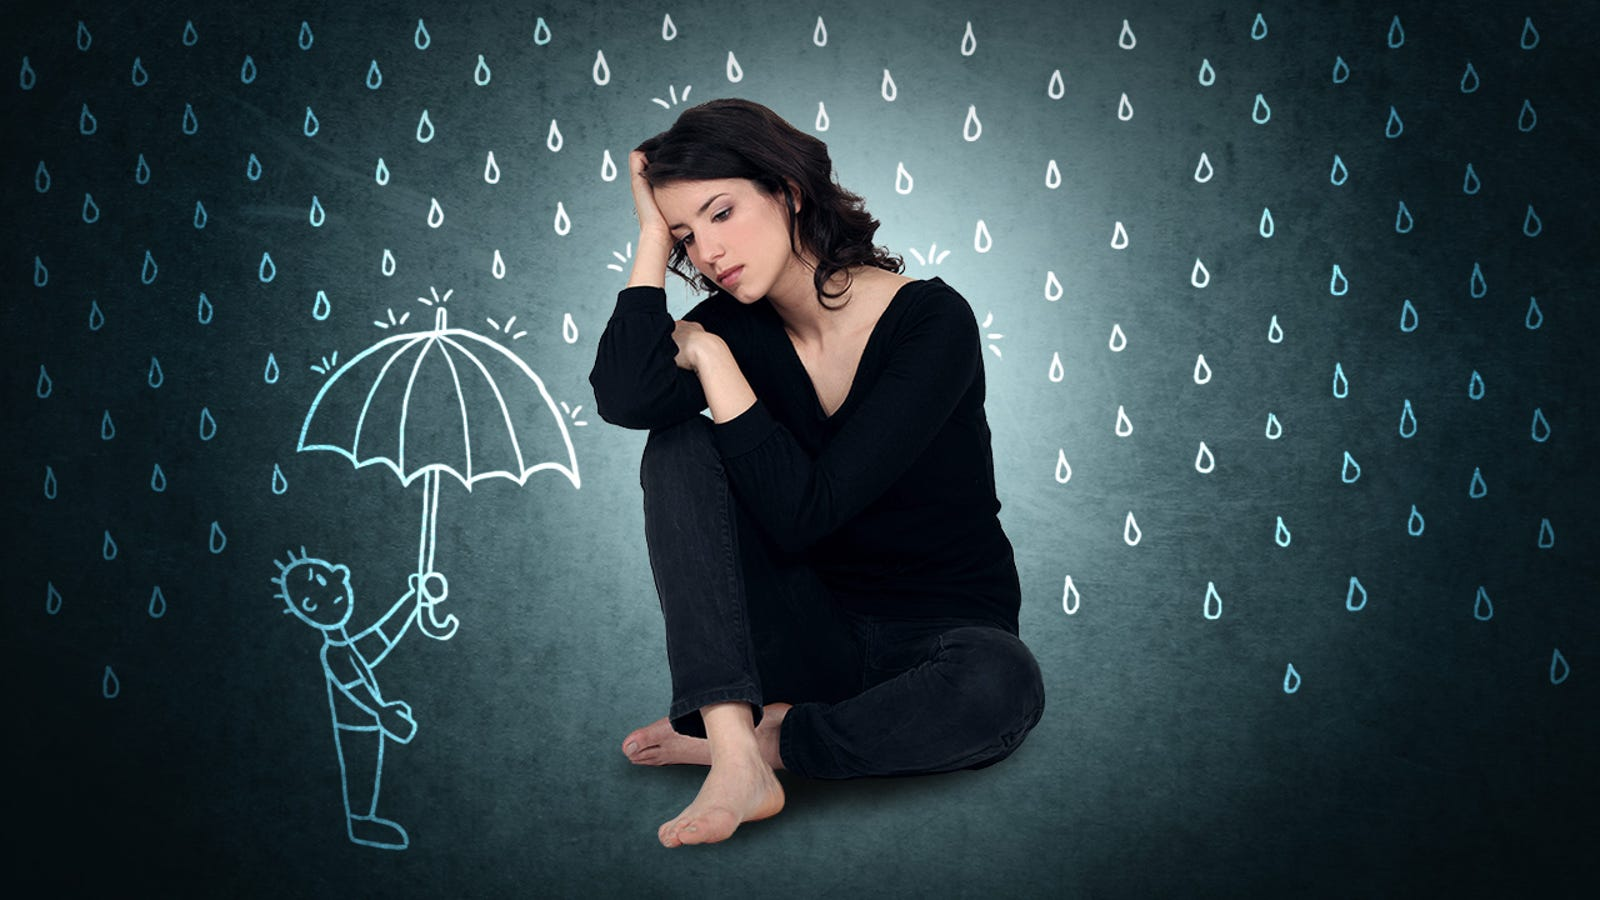 How Can I Help A Friend Who Seems Depressed-1641